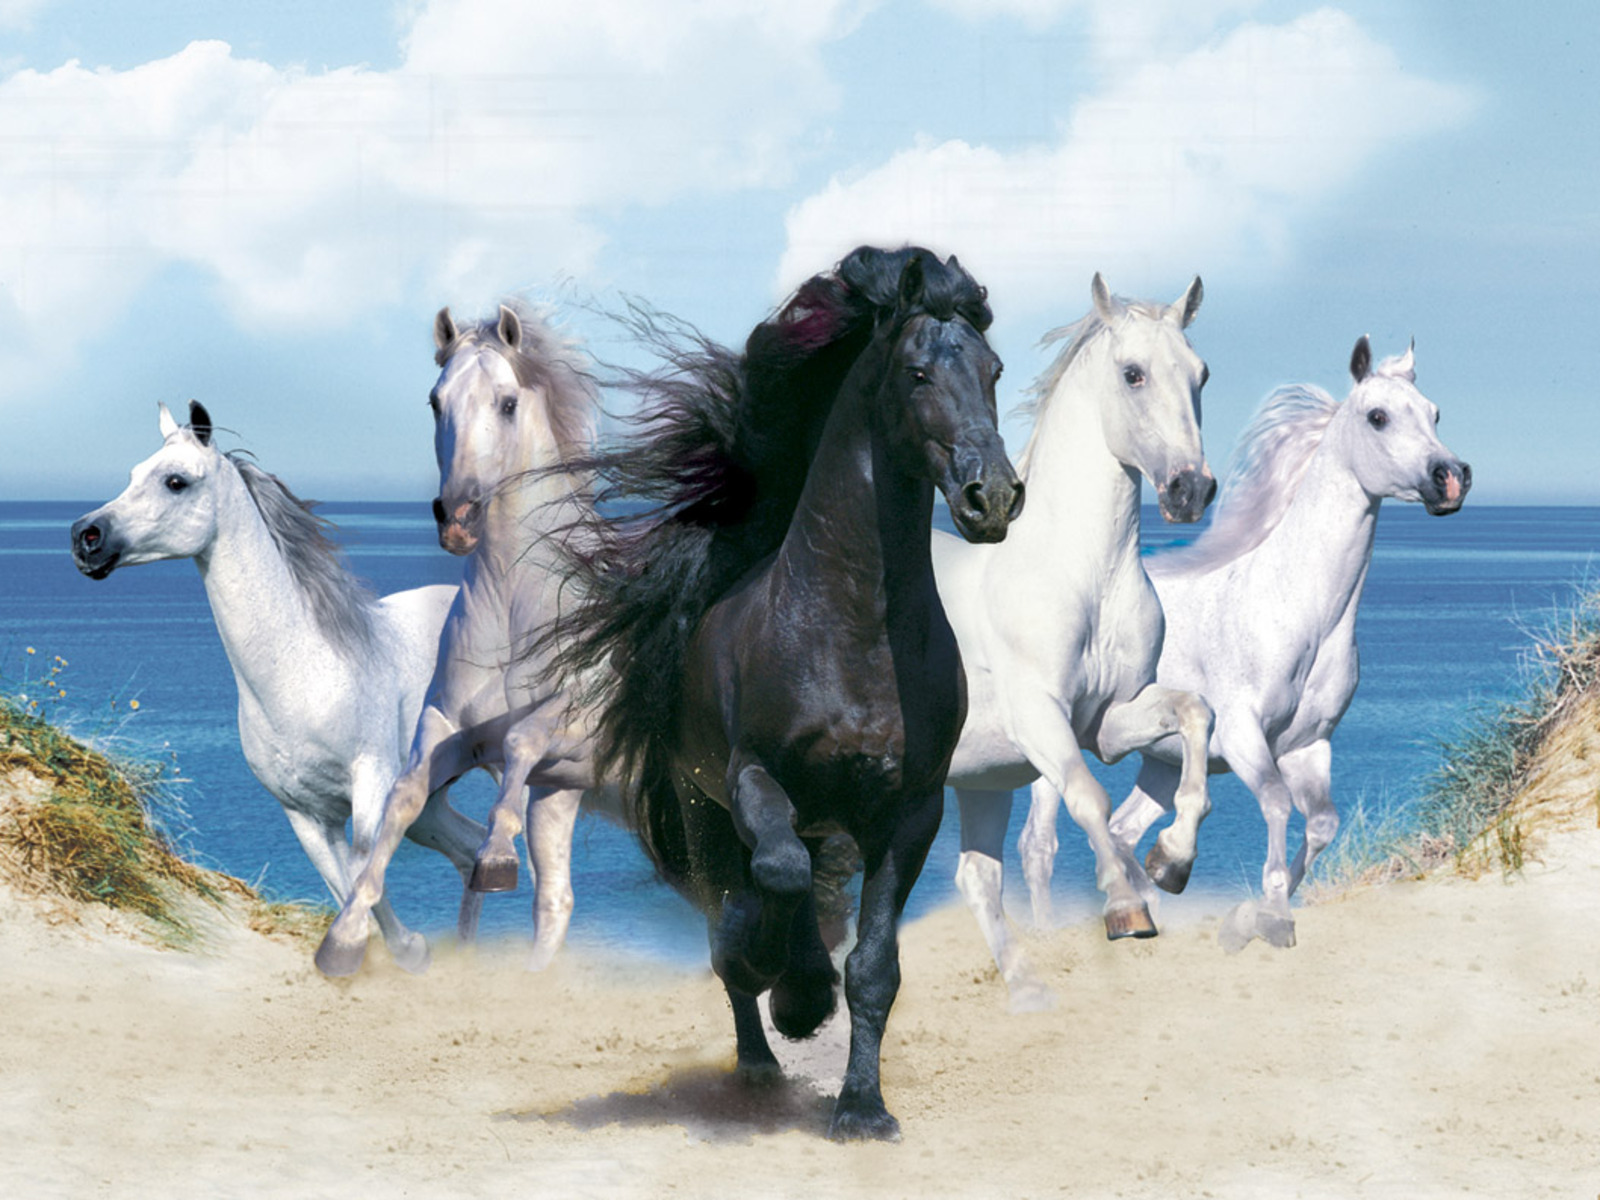 Galloping on the spiaggia